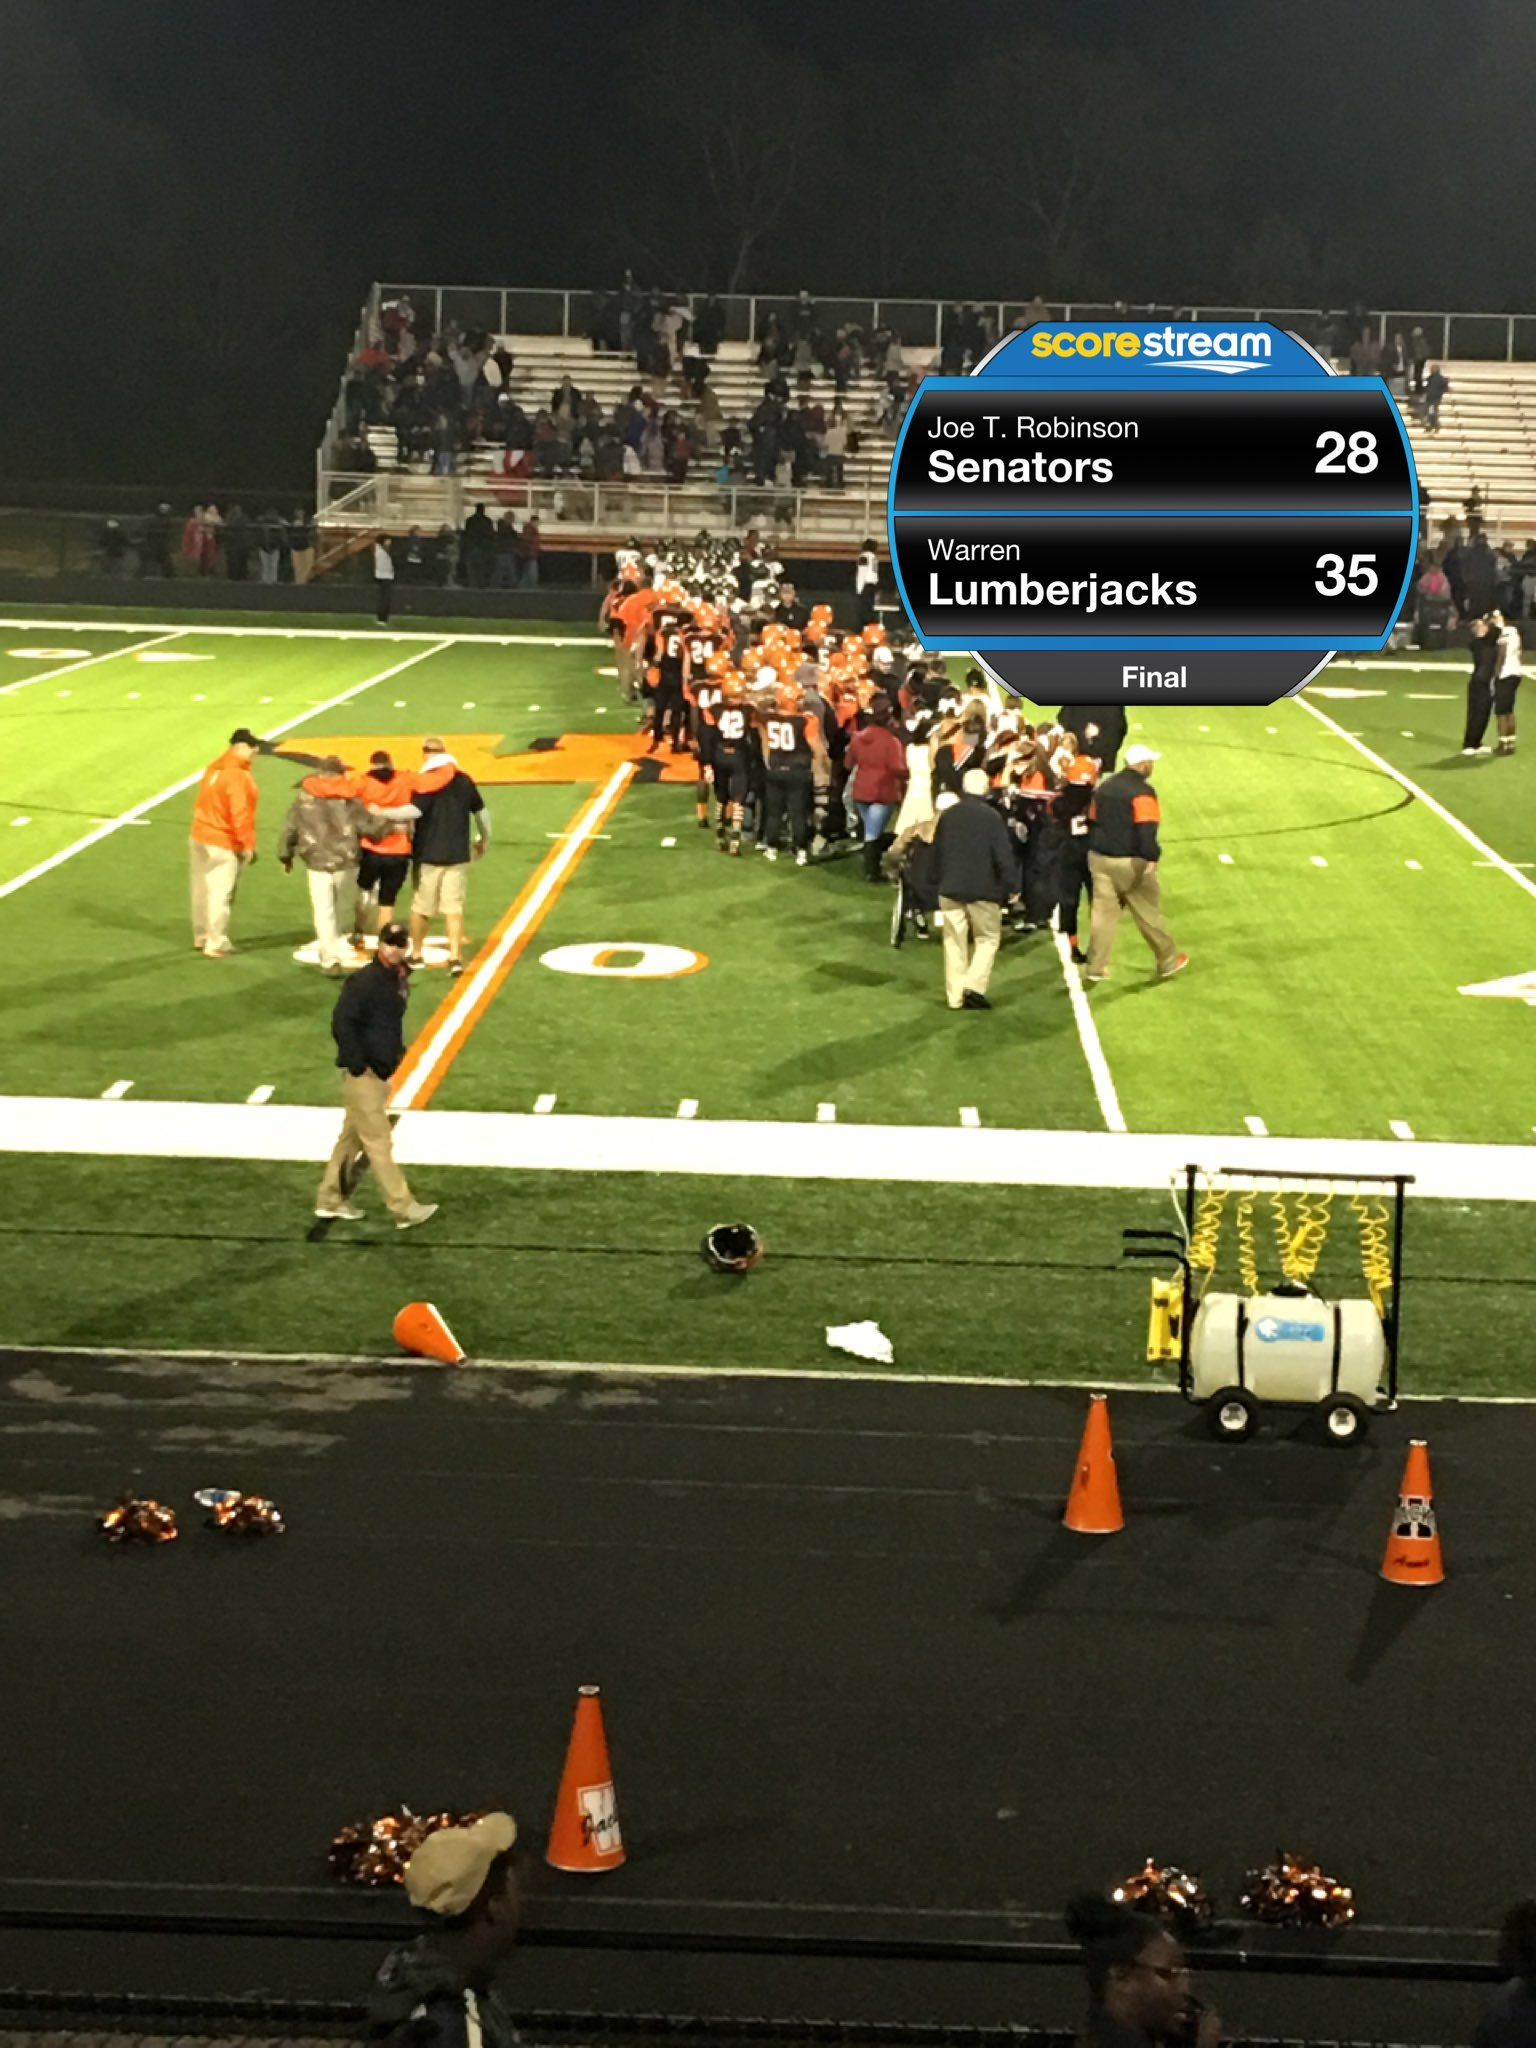 Lumberjacks To Play For State Le Crown Warren 27 20 Valley View Full Report